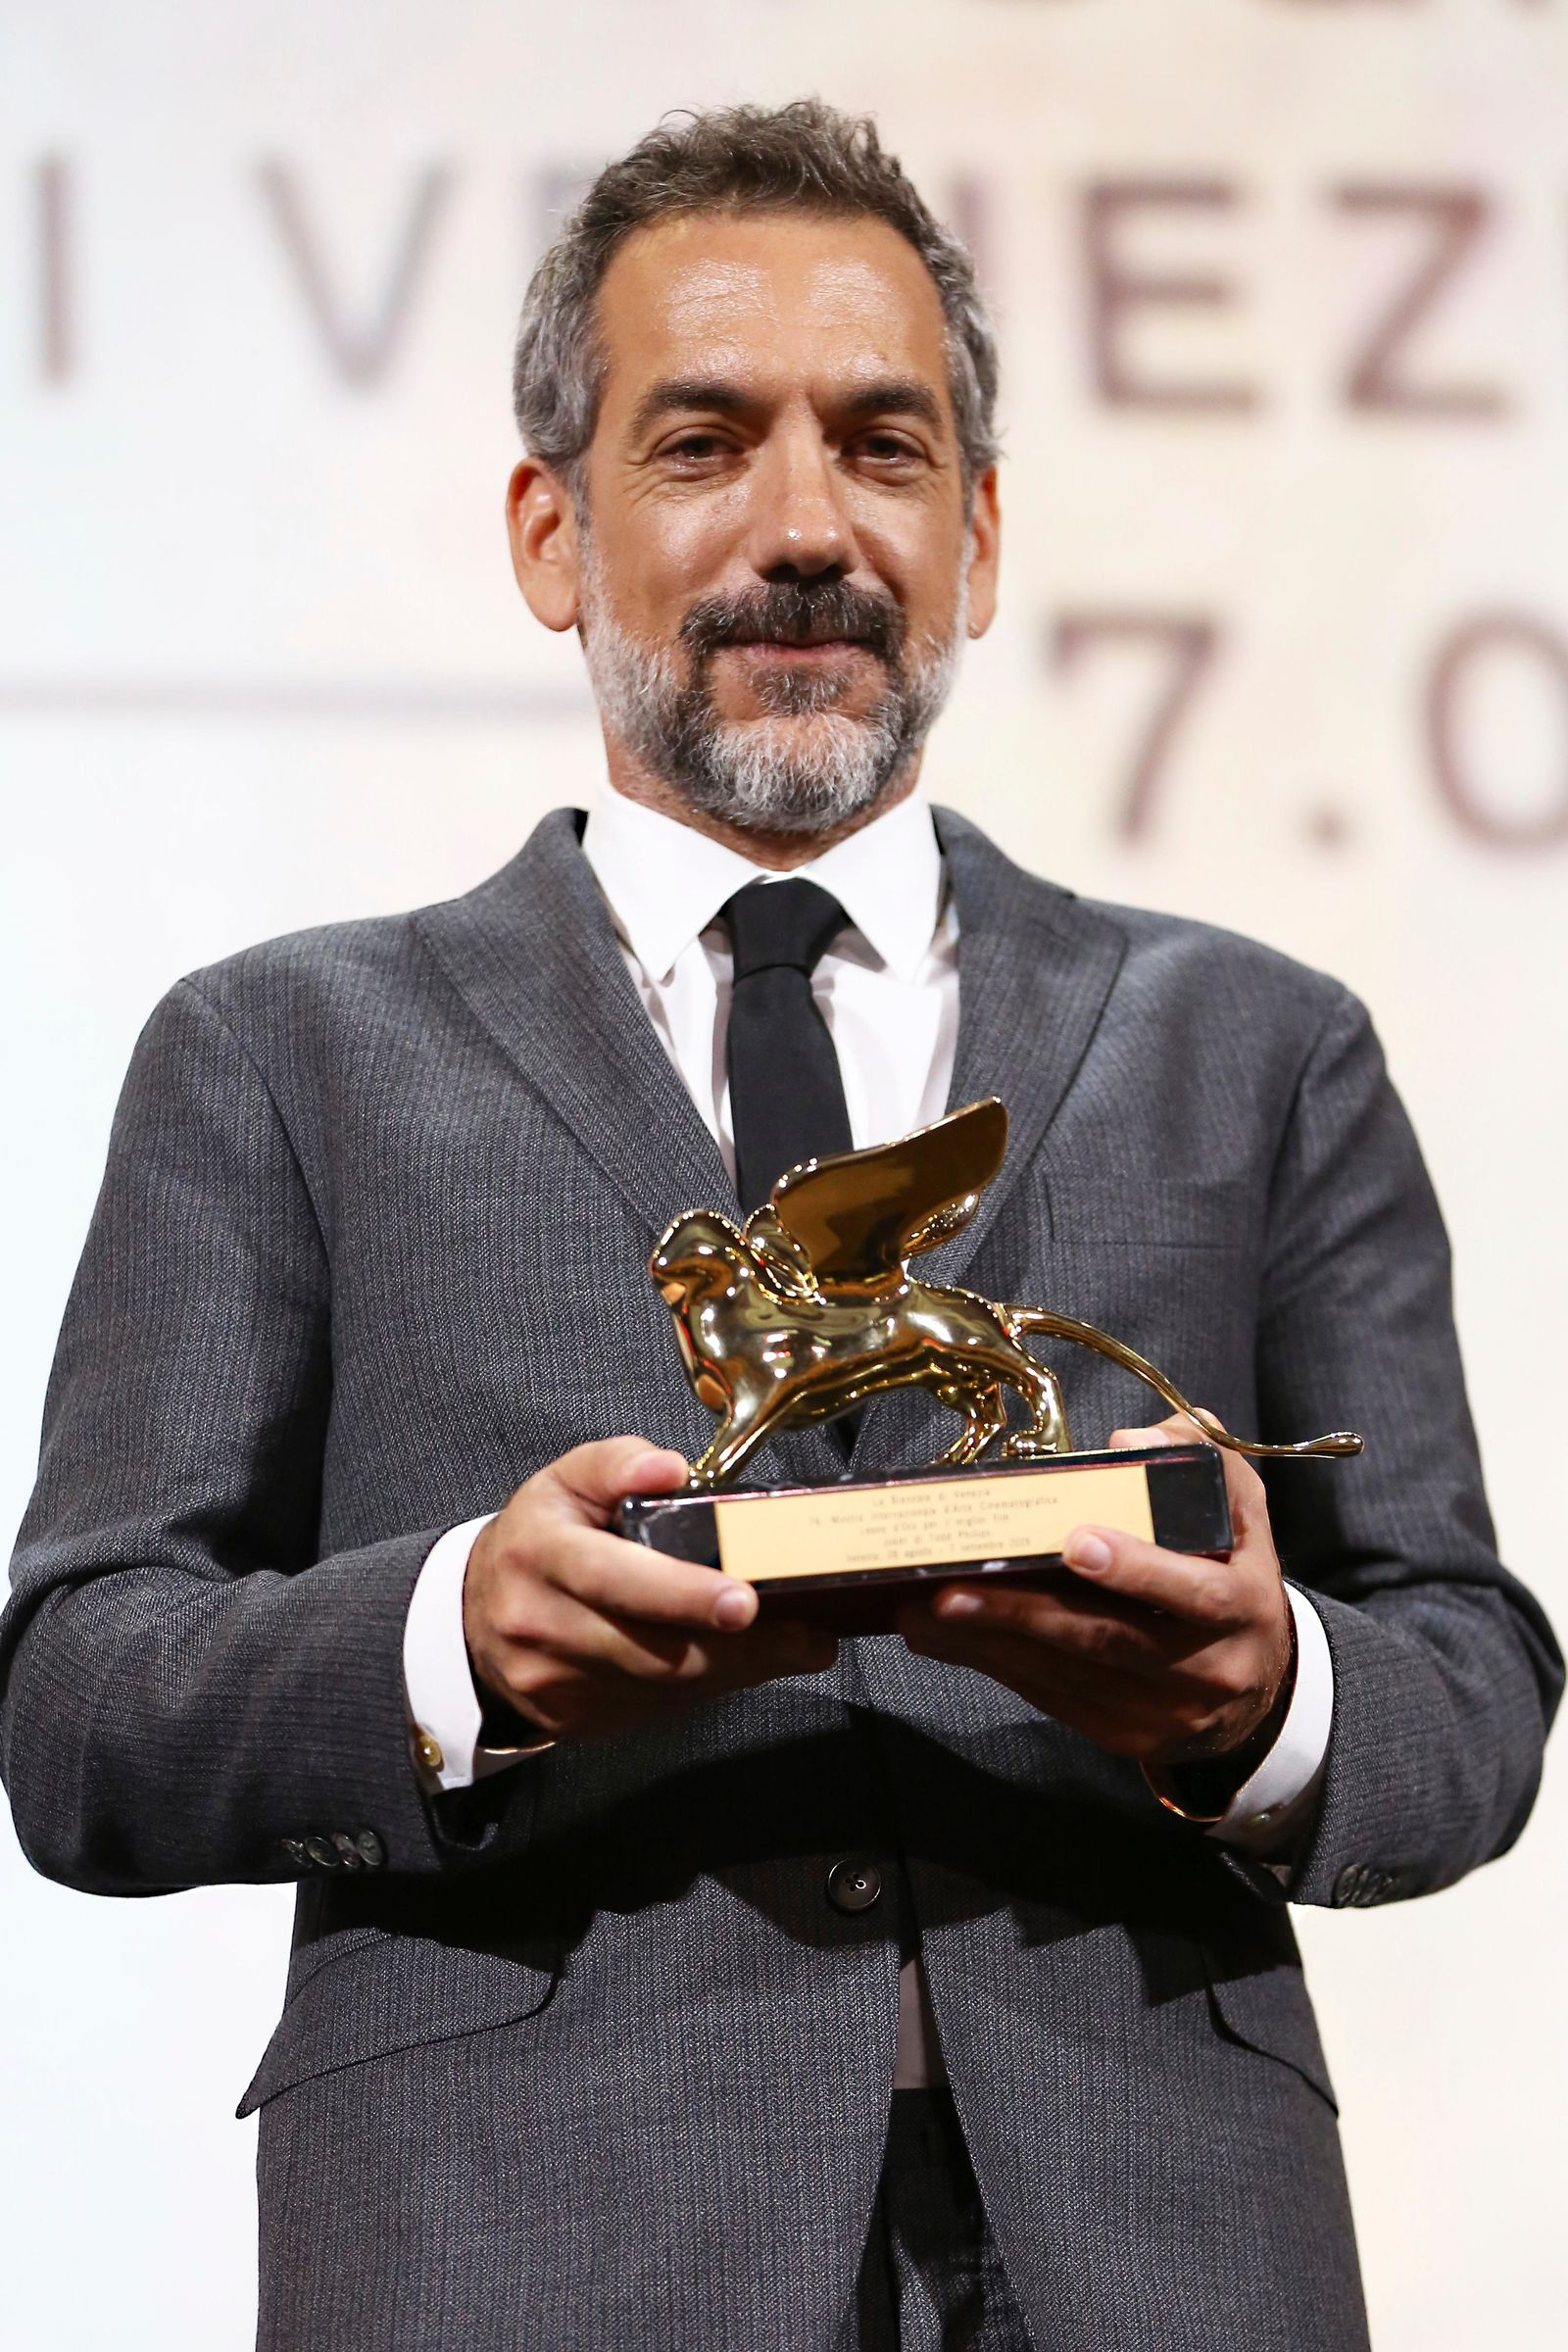 Director Todd Phillips holds the Golden Lion for Best Film for 'Joker' at the closing ceremony of the 76th edition of the Venice Film Festival, Venice, Italy, Saturday, Sept. 7, 2019. (Photo by Joel C Ryan/Invision/AP)